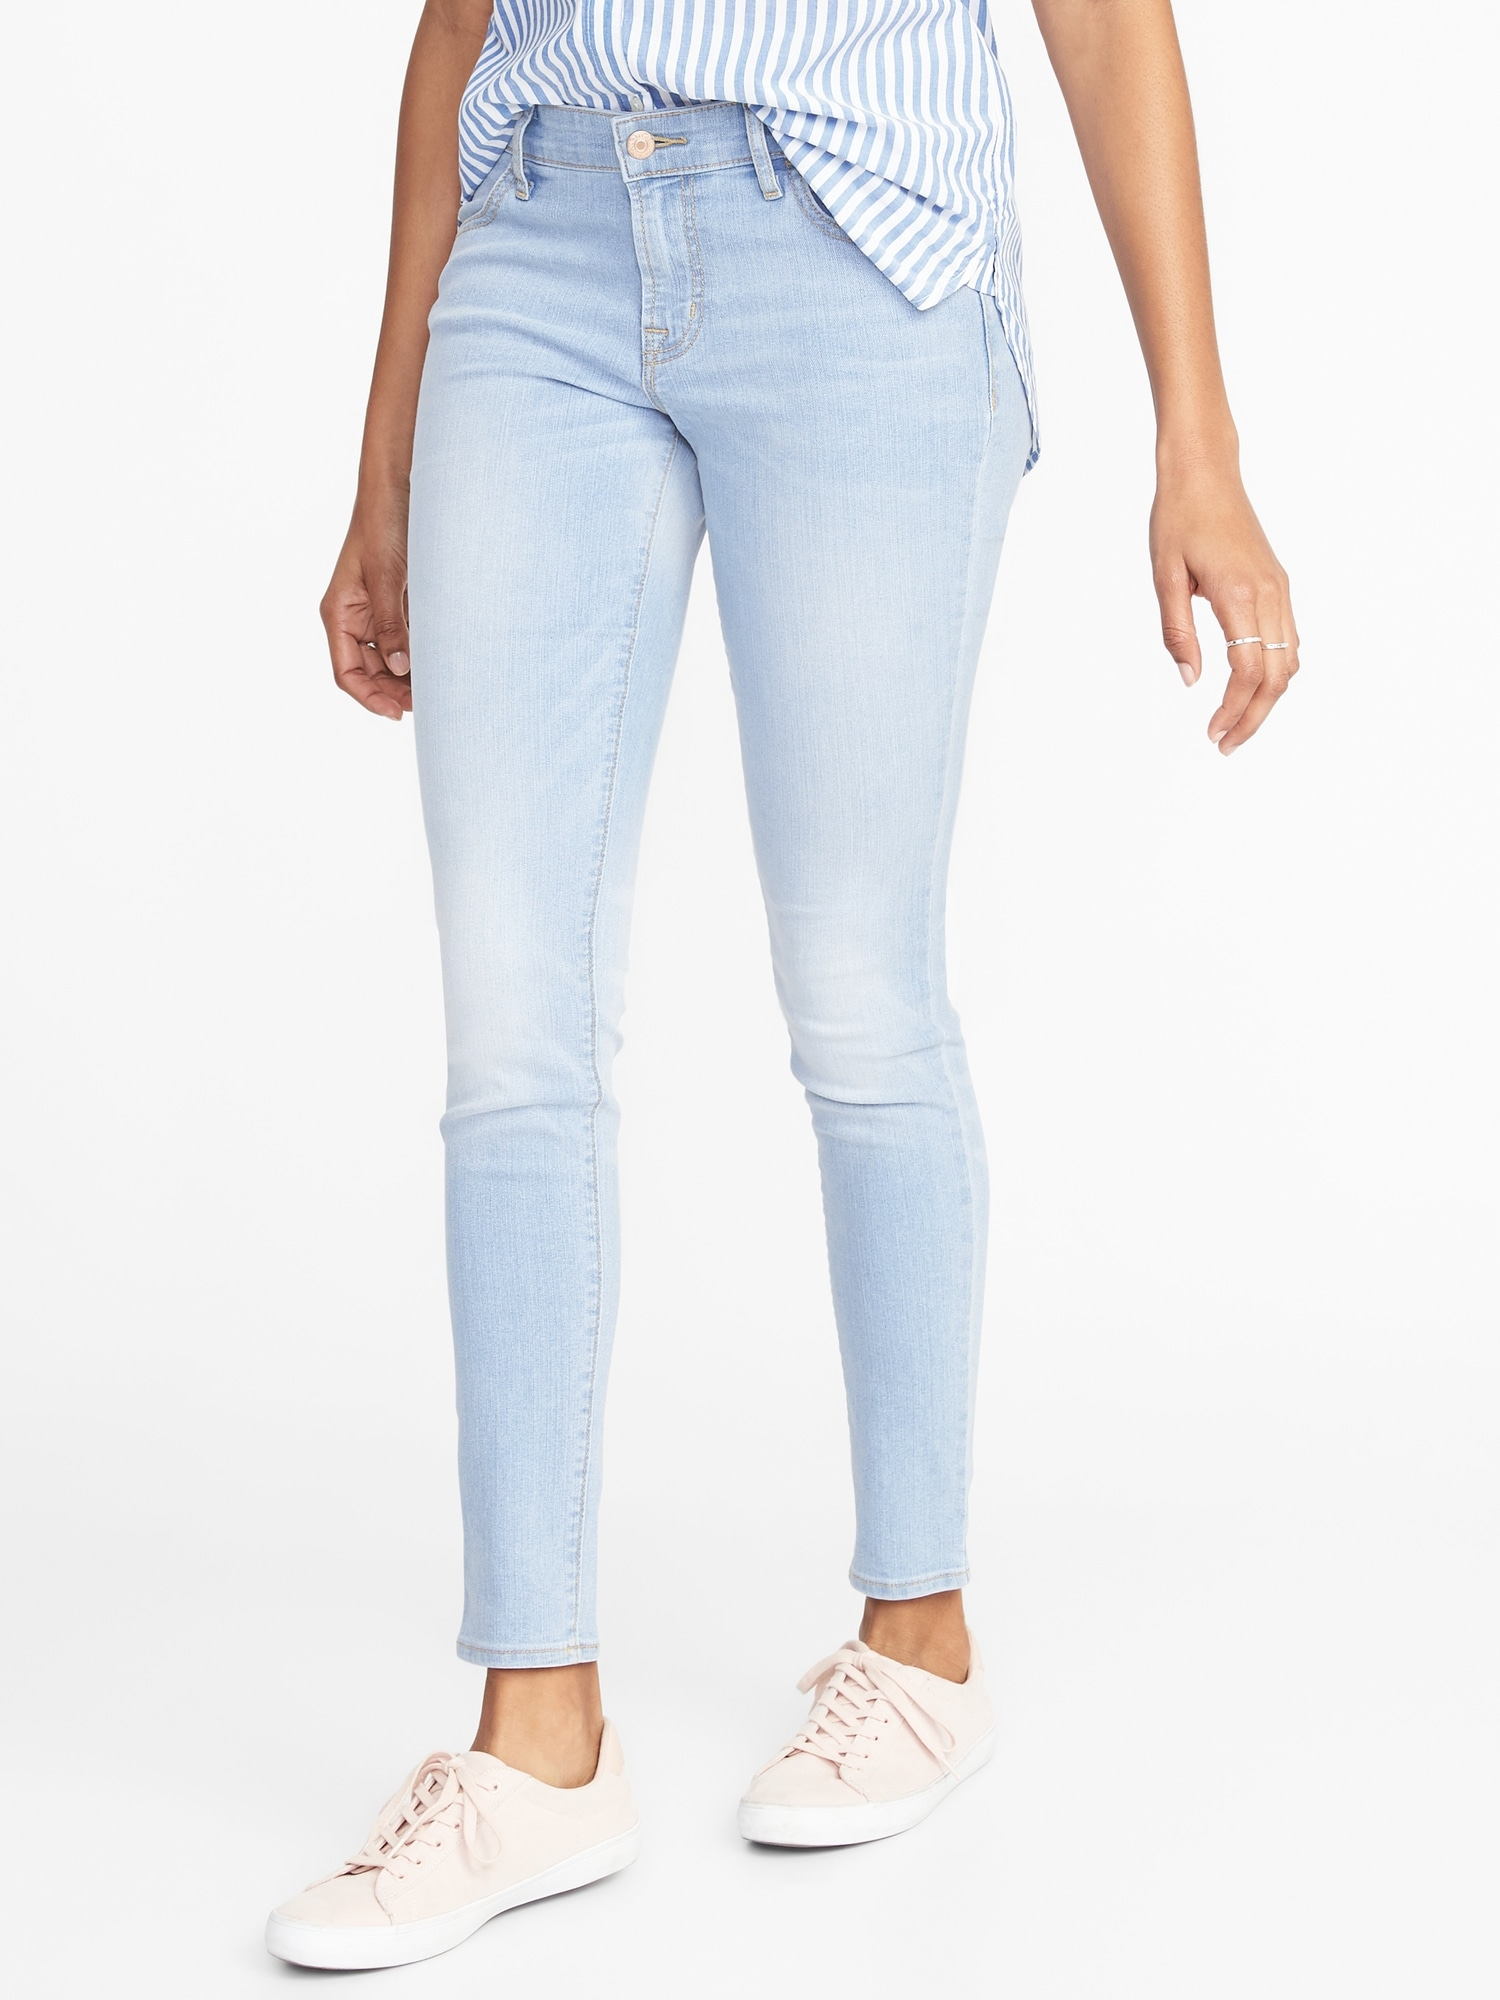 8a83456b037 Mid-Rise Super Skinny Jeans for Women | Old Navy